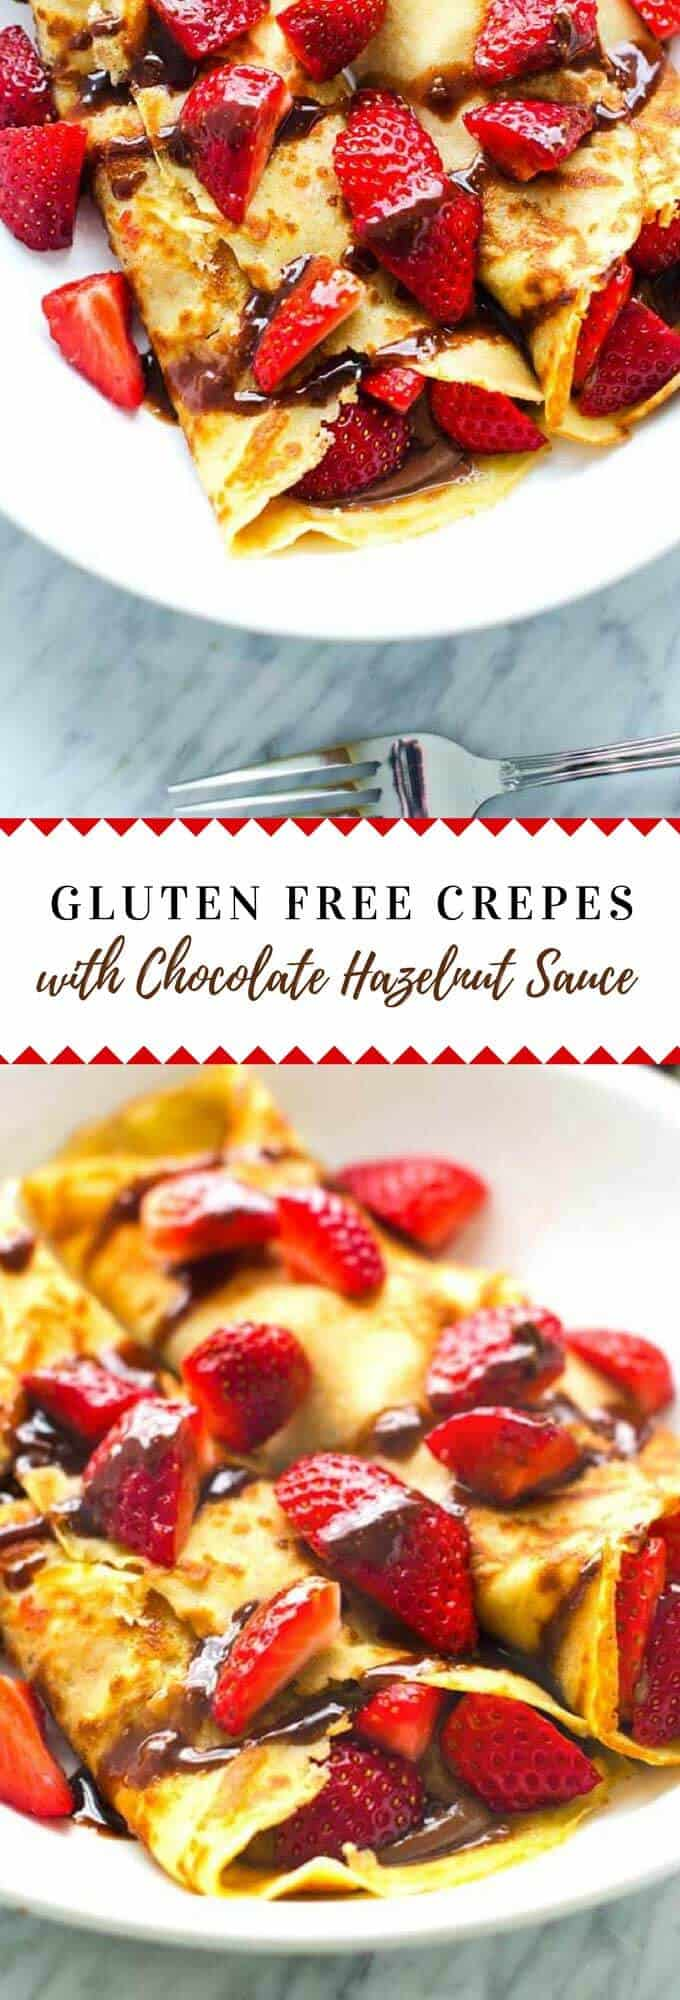 These Gluten Free Crepes with Chocolate Hazelnut Sauce are the perfect start to any special day!  No one will know that they are gluten free. #glutenfree #glutenfreebreakfast #crepes